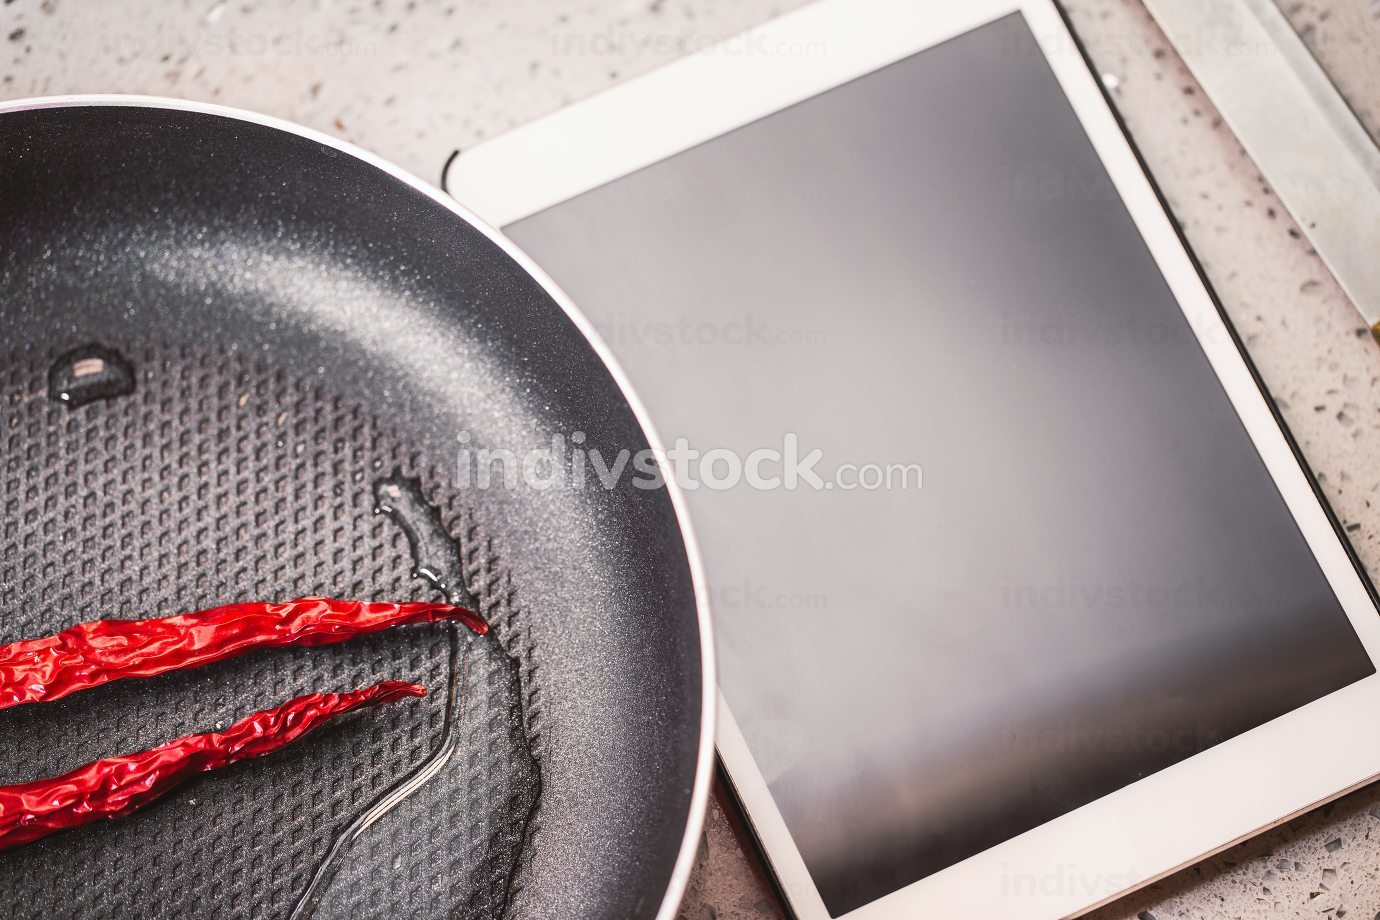 Red Chilli Peppers in a Frying Pan